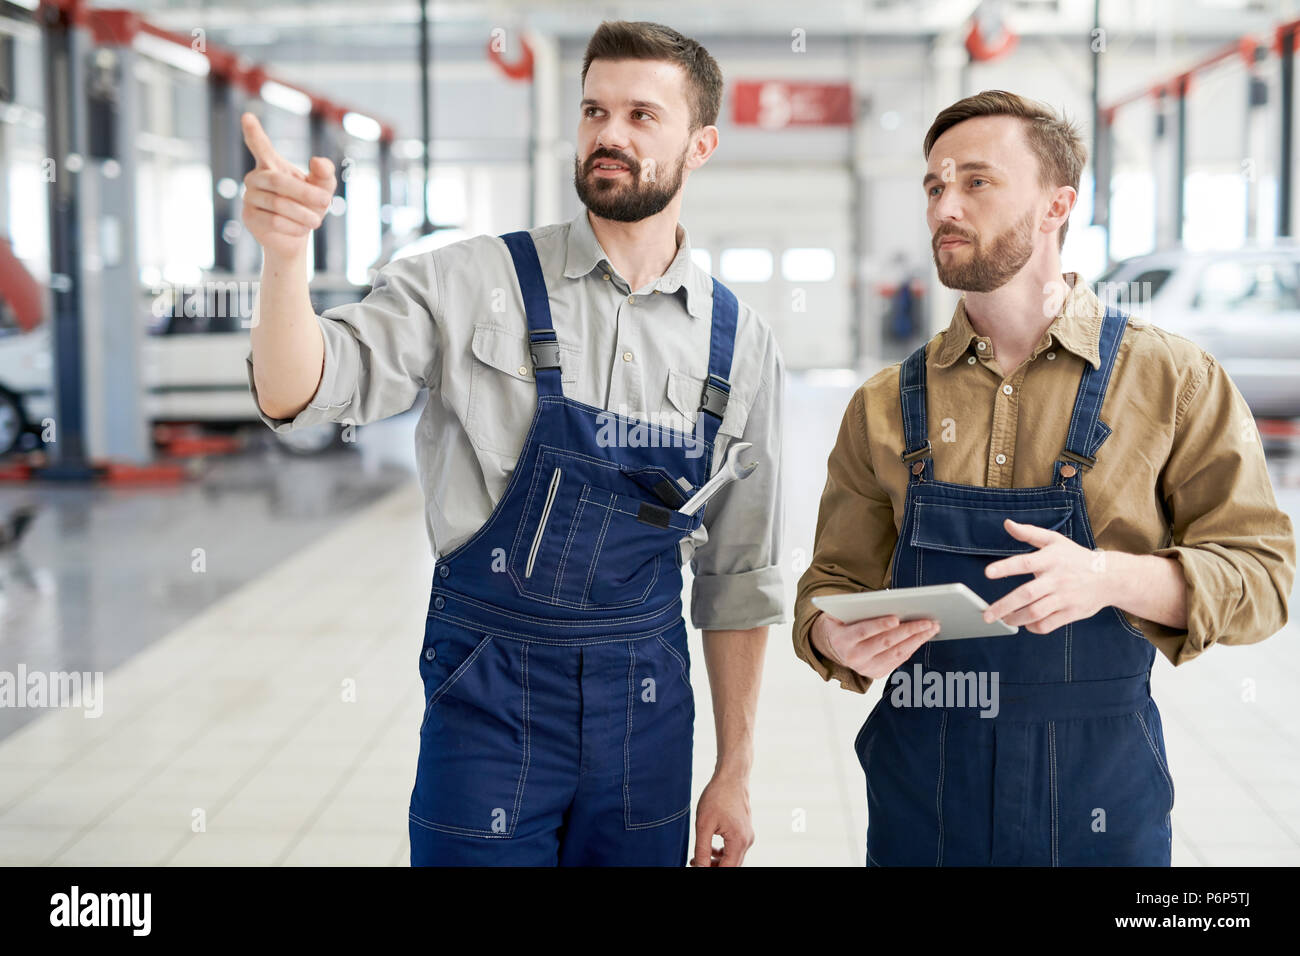 Modern Mechanics at Work - Stock Image